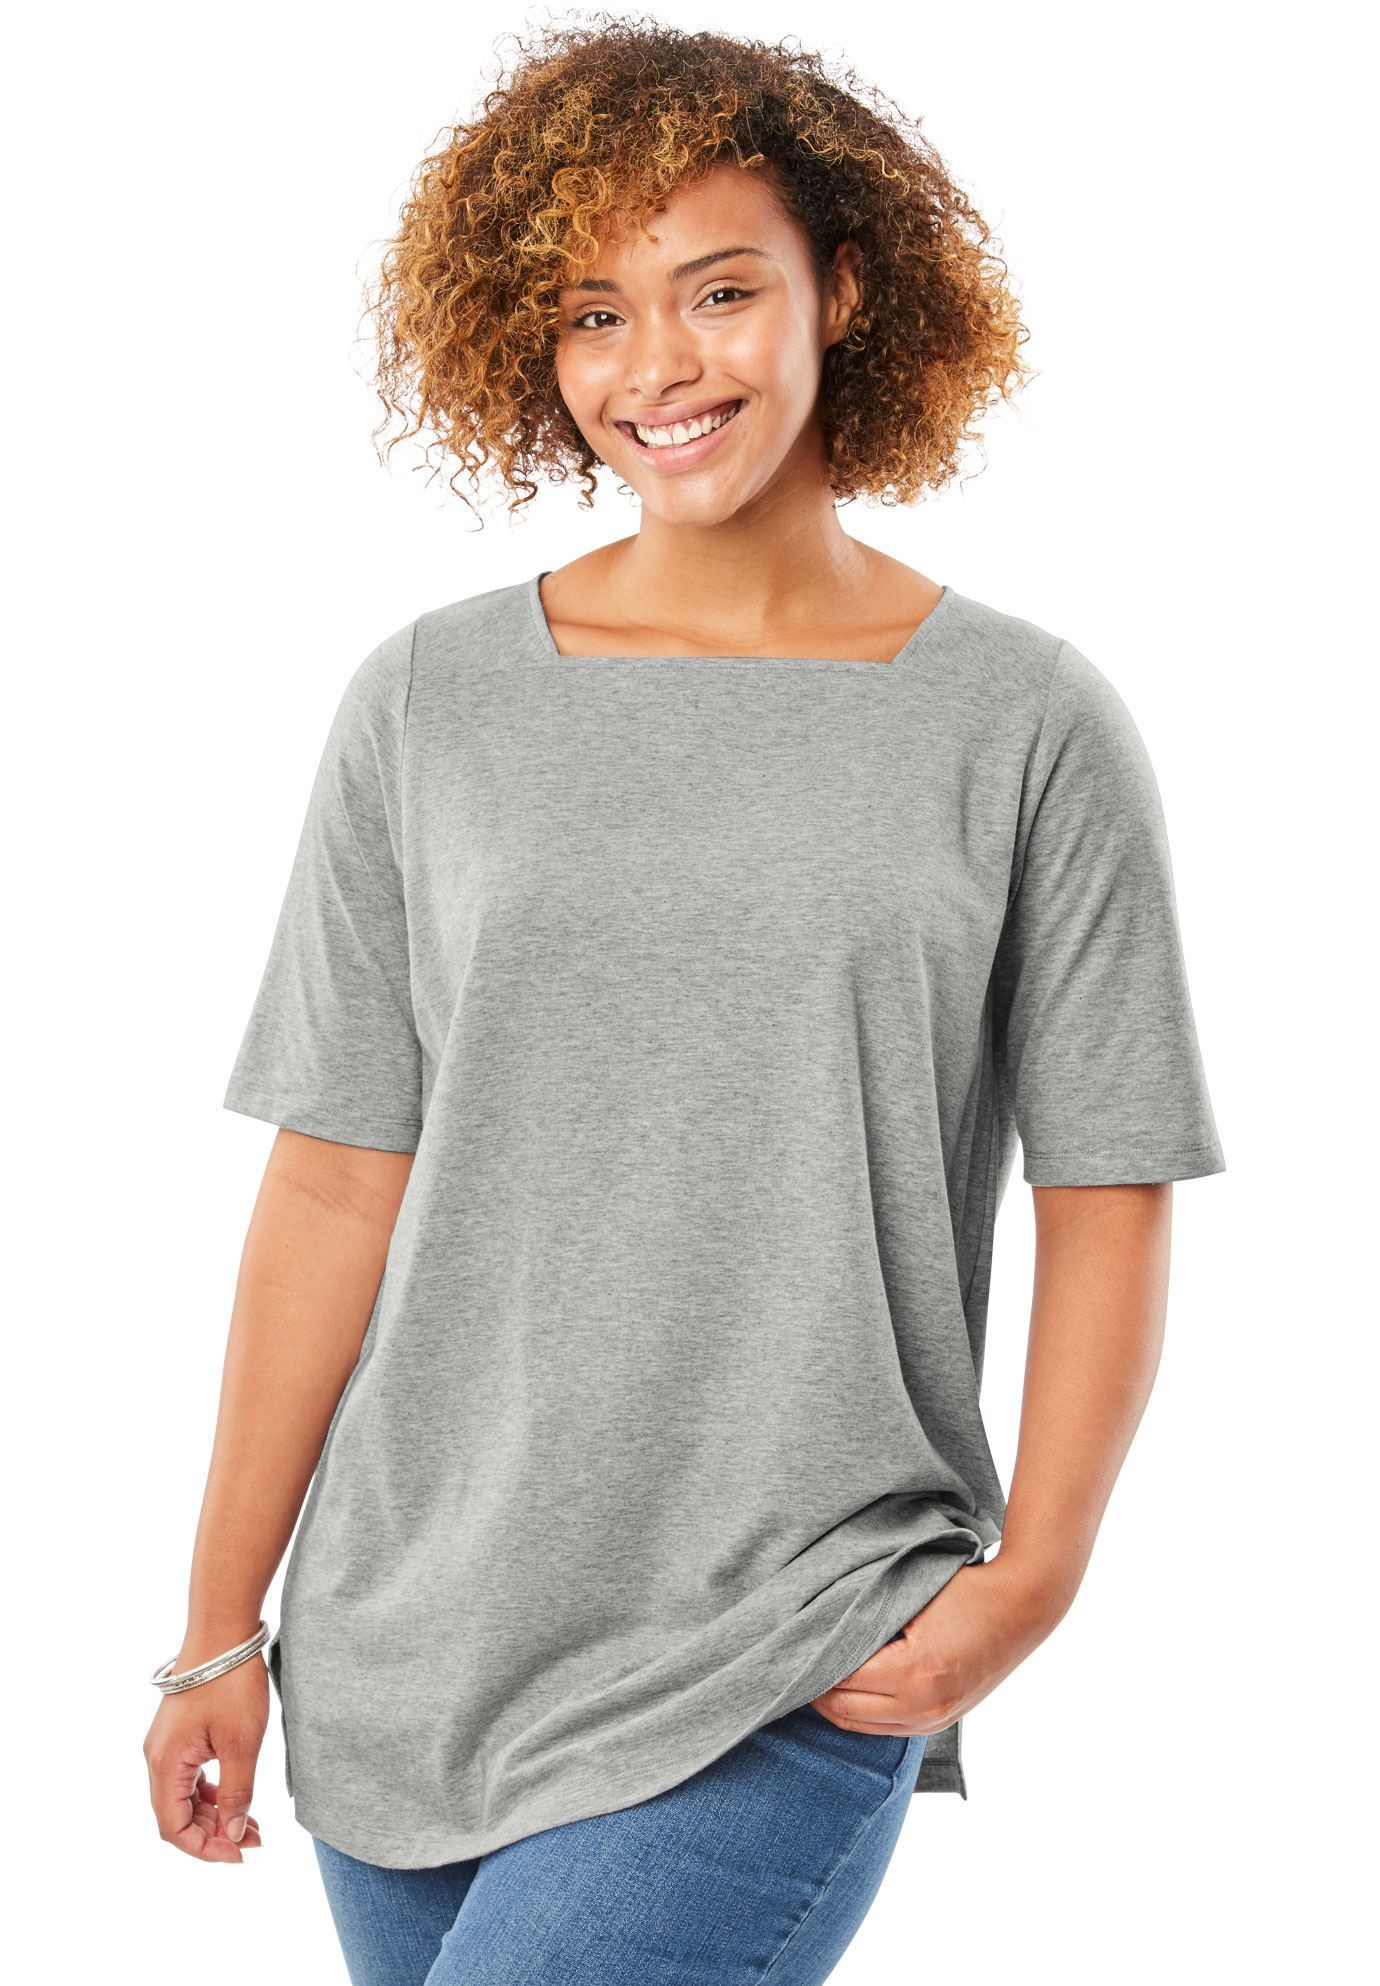 ca478f7770d5 Perfect square neck tee shirt - Women's Plus Size Clothing ...